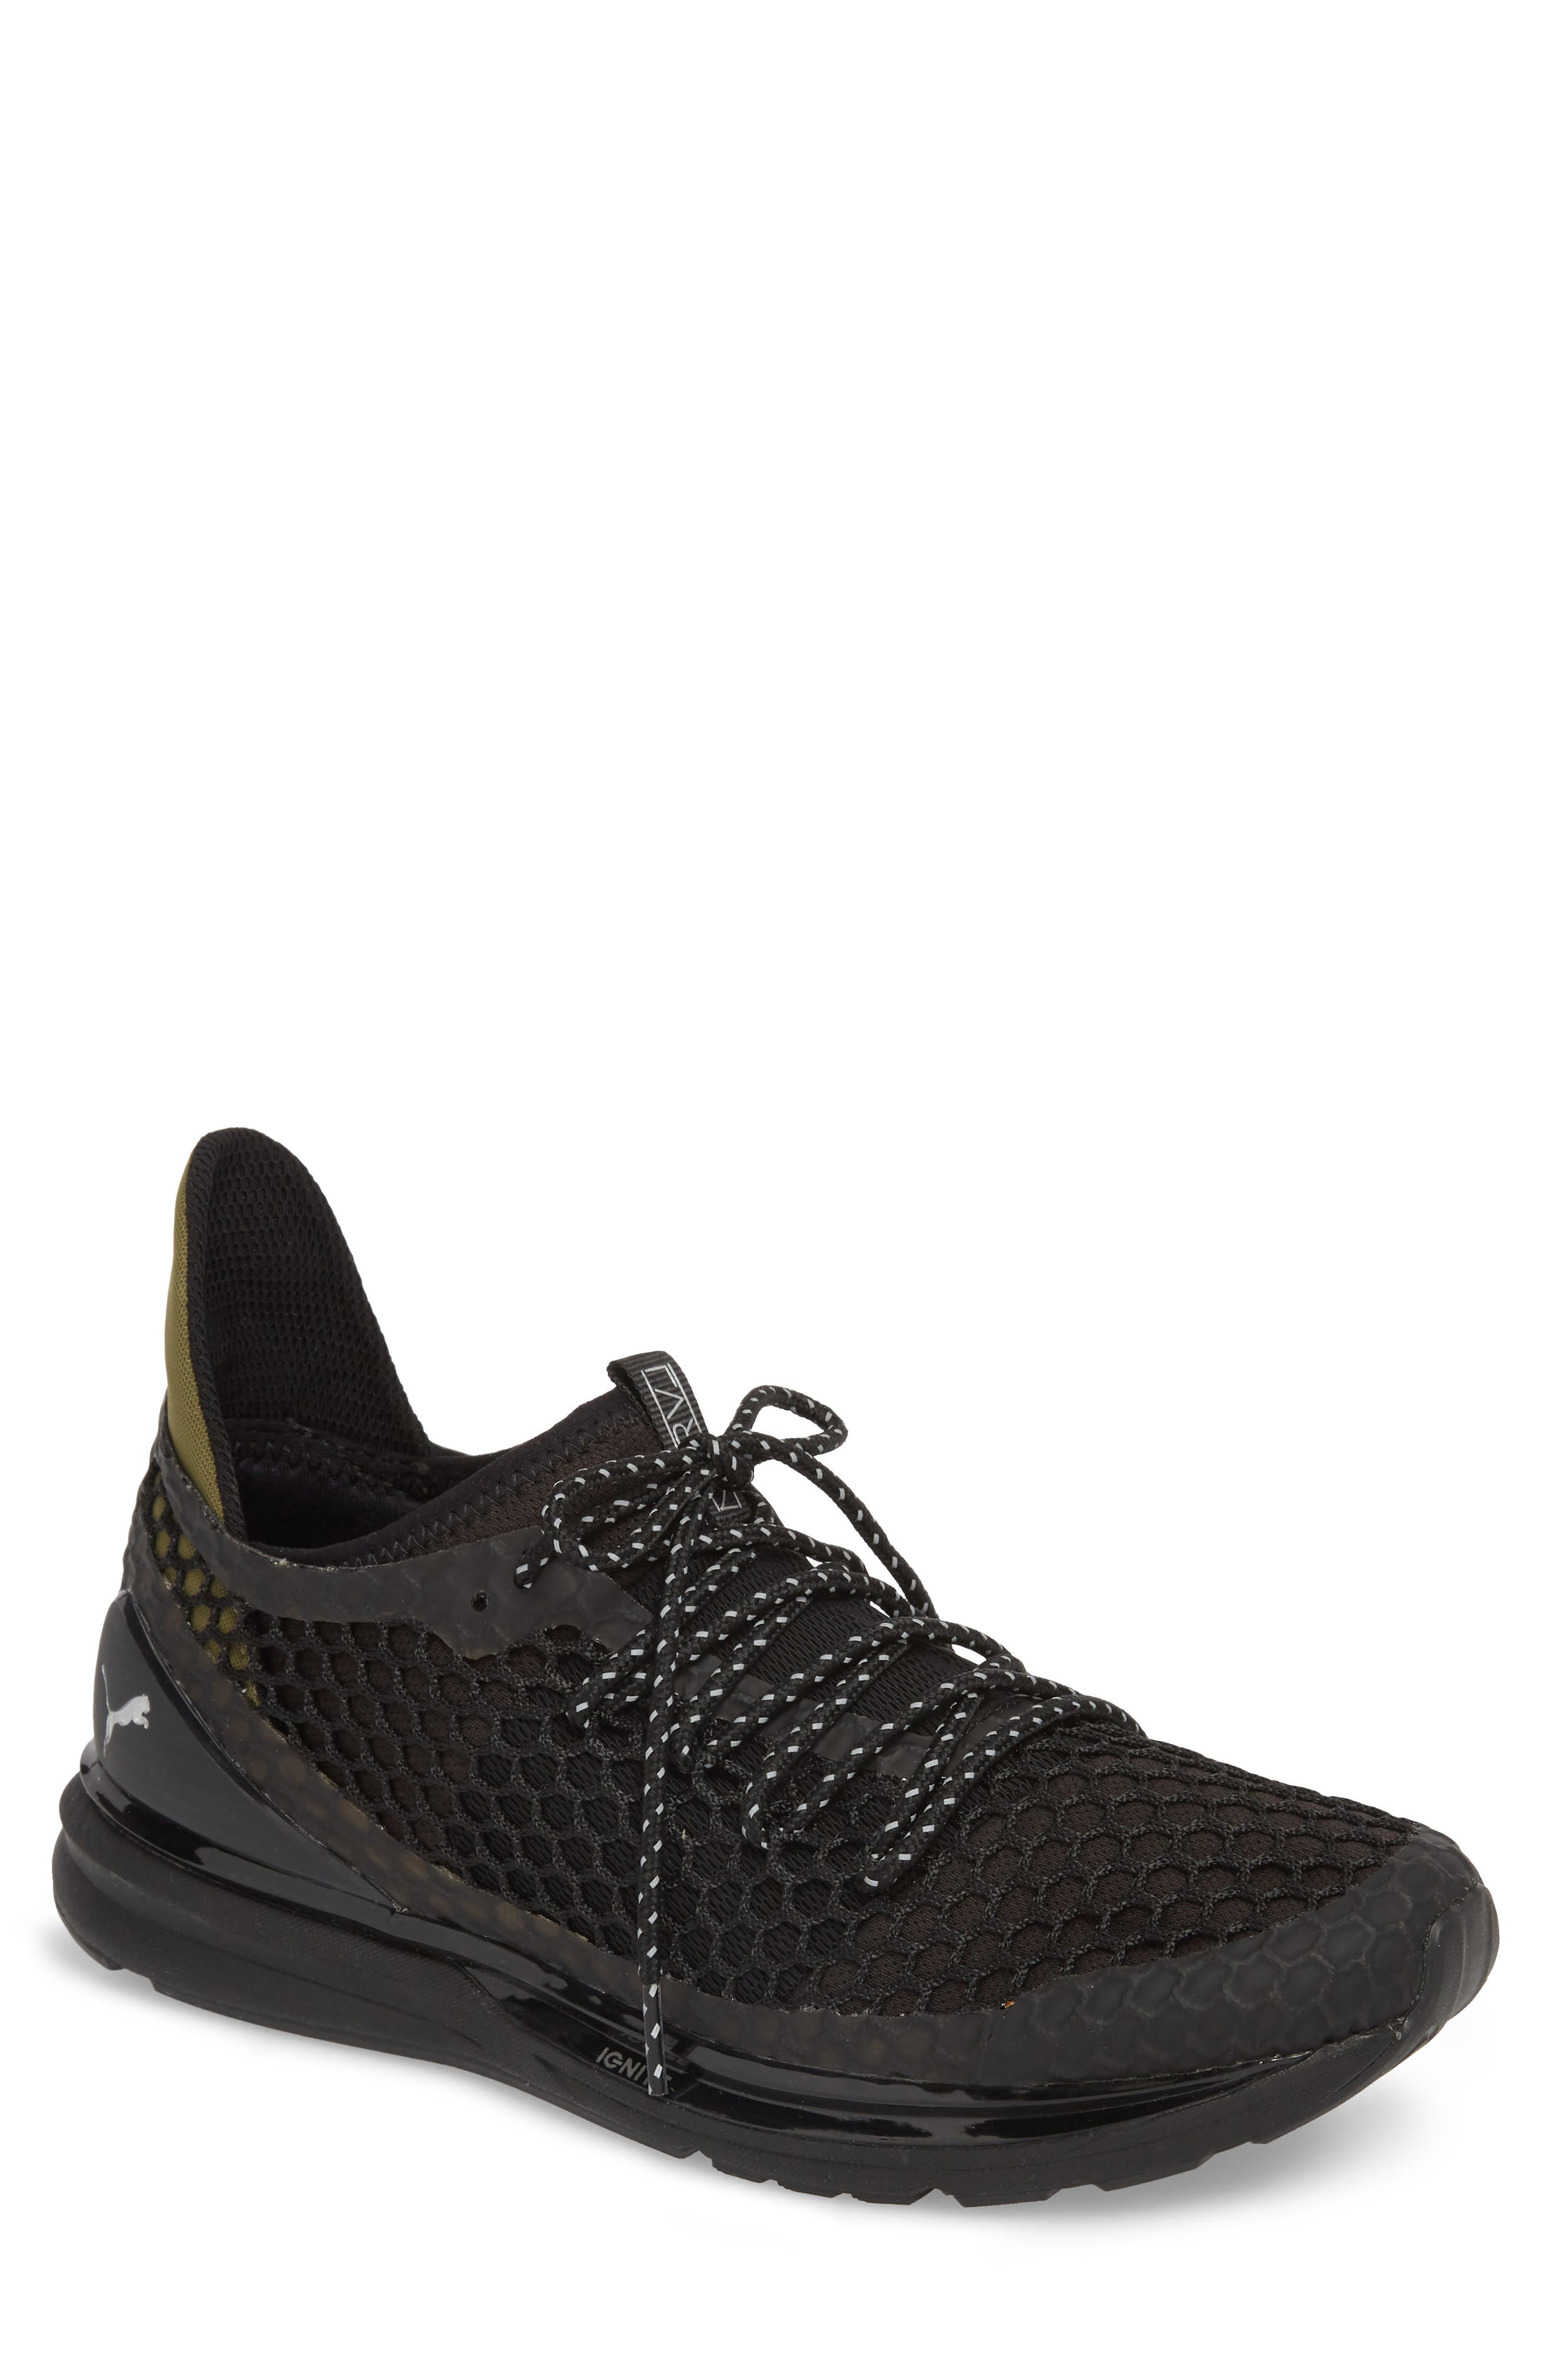 PUMA IGNITE Limitless NETFIT Running Shoe (Men)